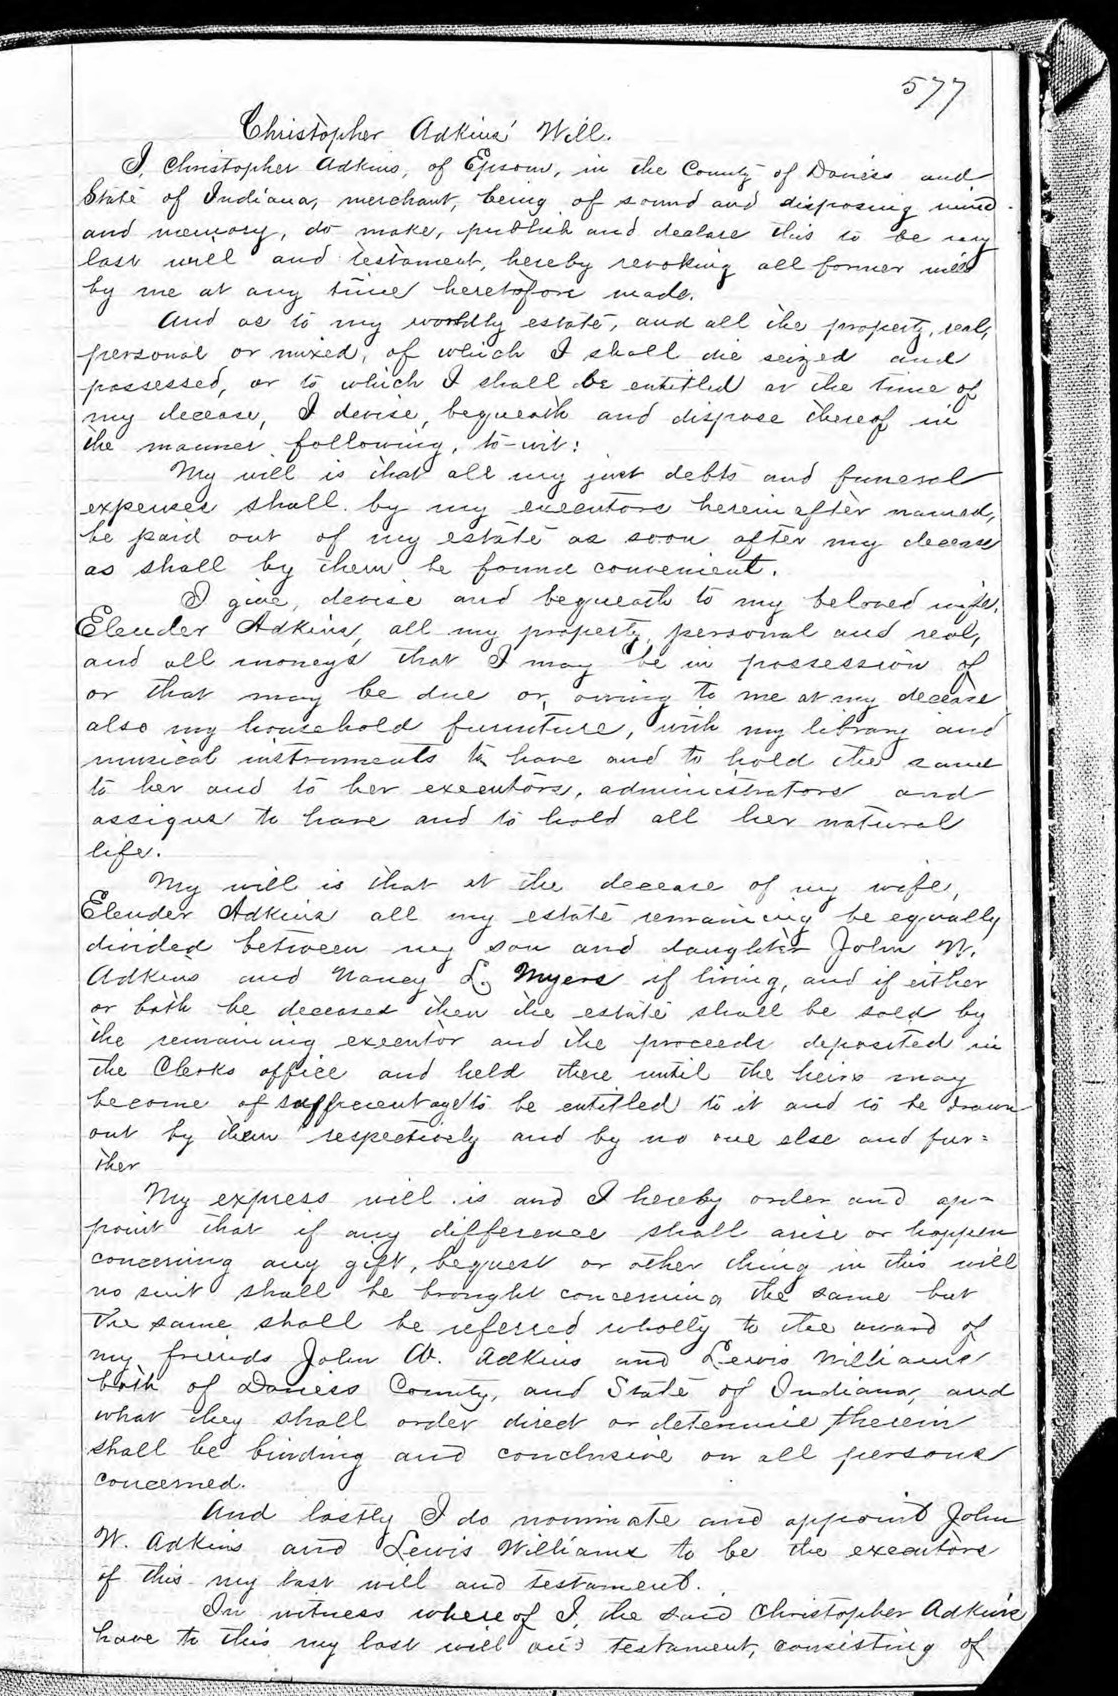 Last Will and Testament of Christopher Adkins (1825-1887) - page 1